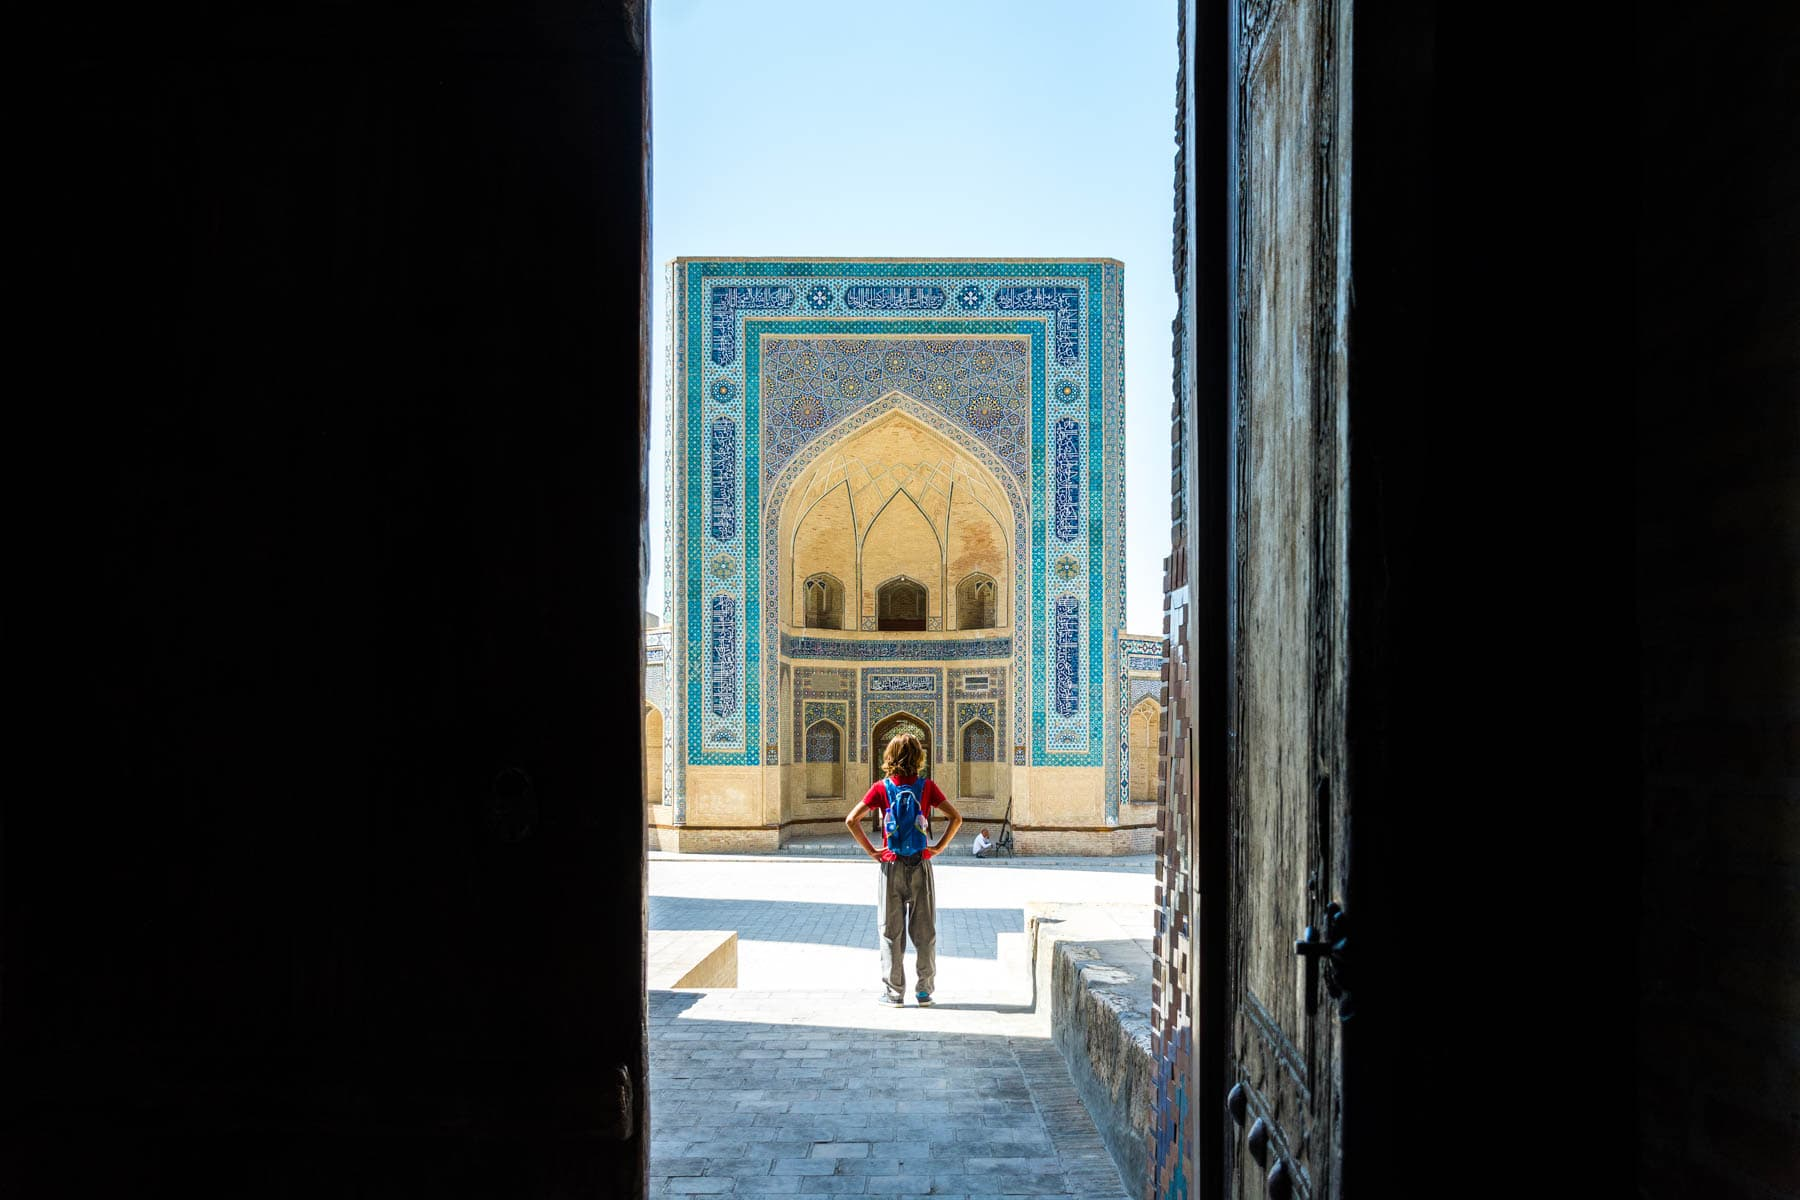 Two week Uzbekistan itinerary - Looking through doors to the Kaylan mosque in Bukhara, Uzbekistan - Lost With Purpose